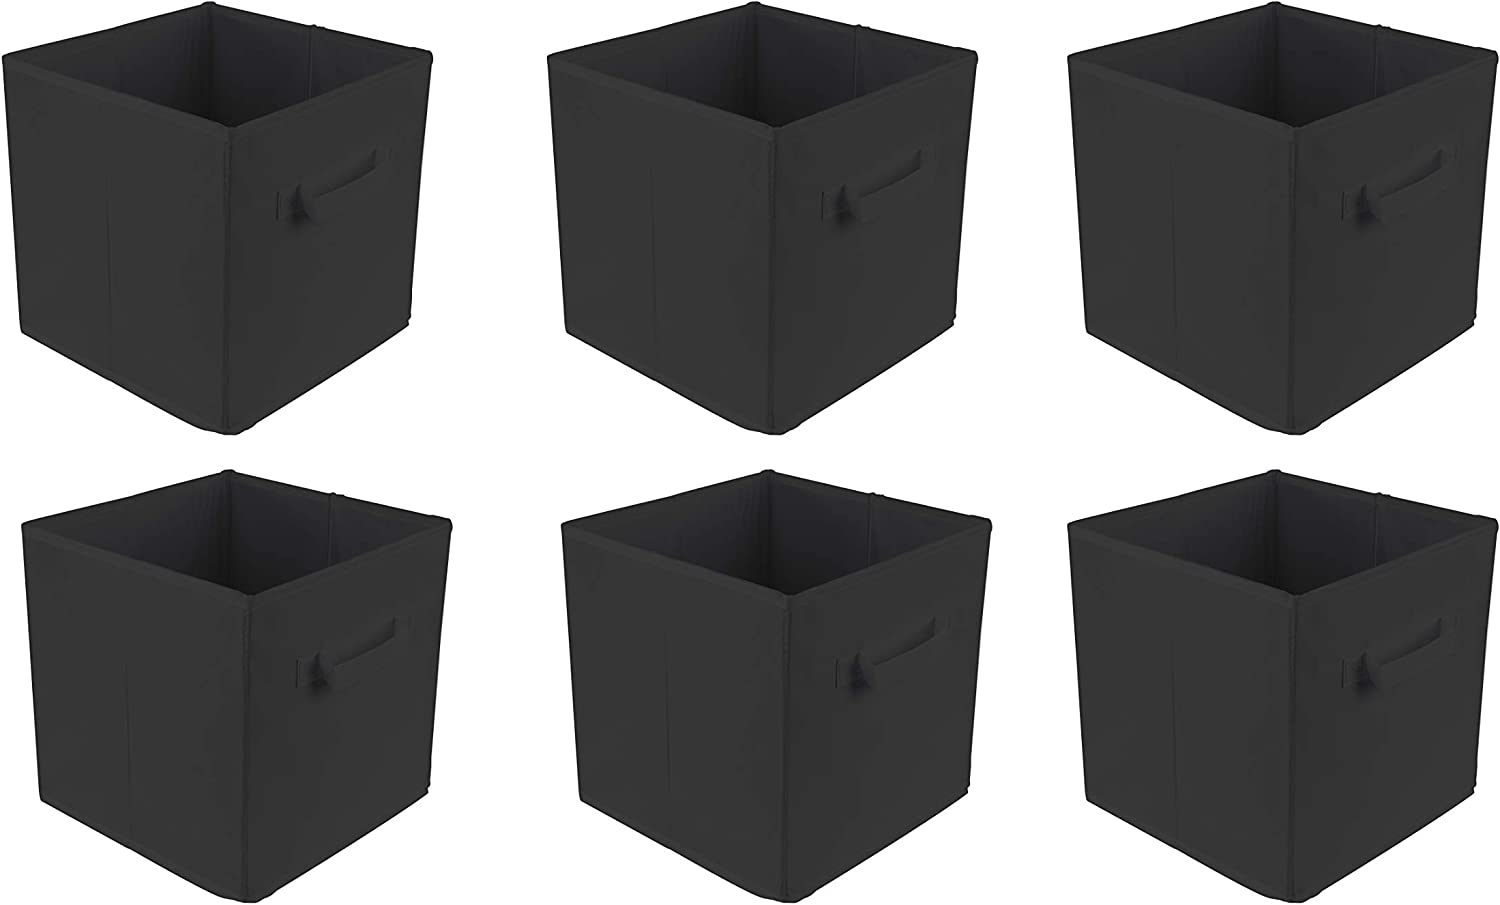 Beige for Home Office Nursery Gym BAAB ORGANIZING 6Pack Foldable Cube Storage Box Organiser Basket Containers with Handles